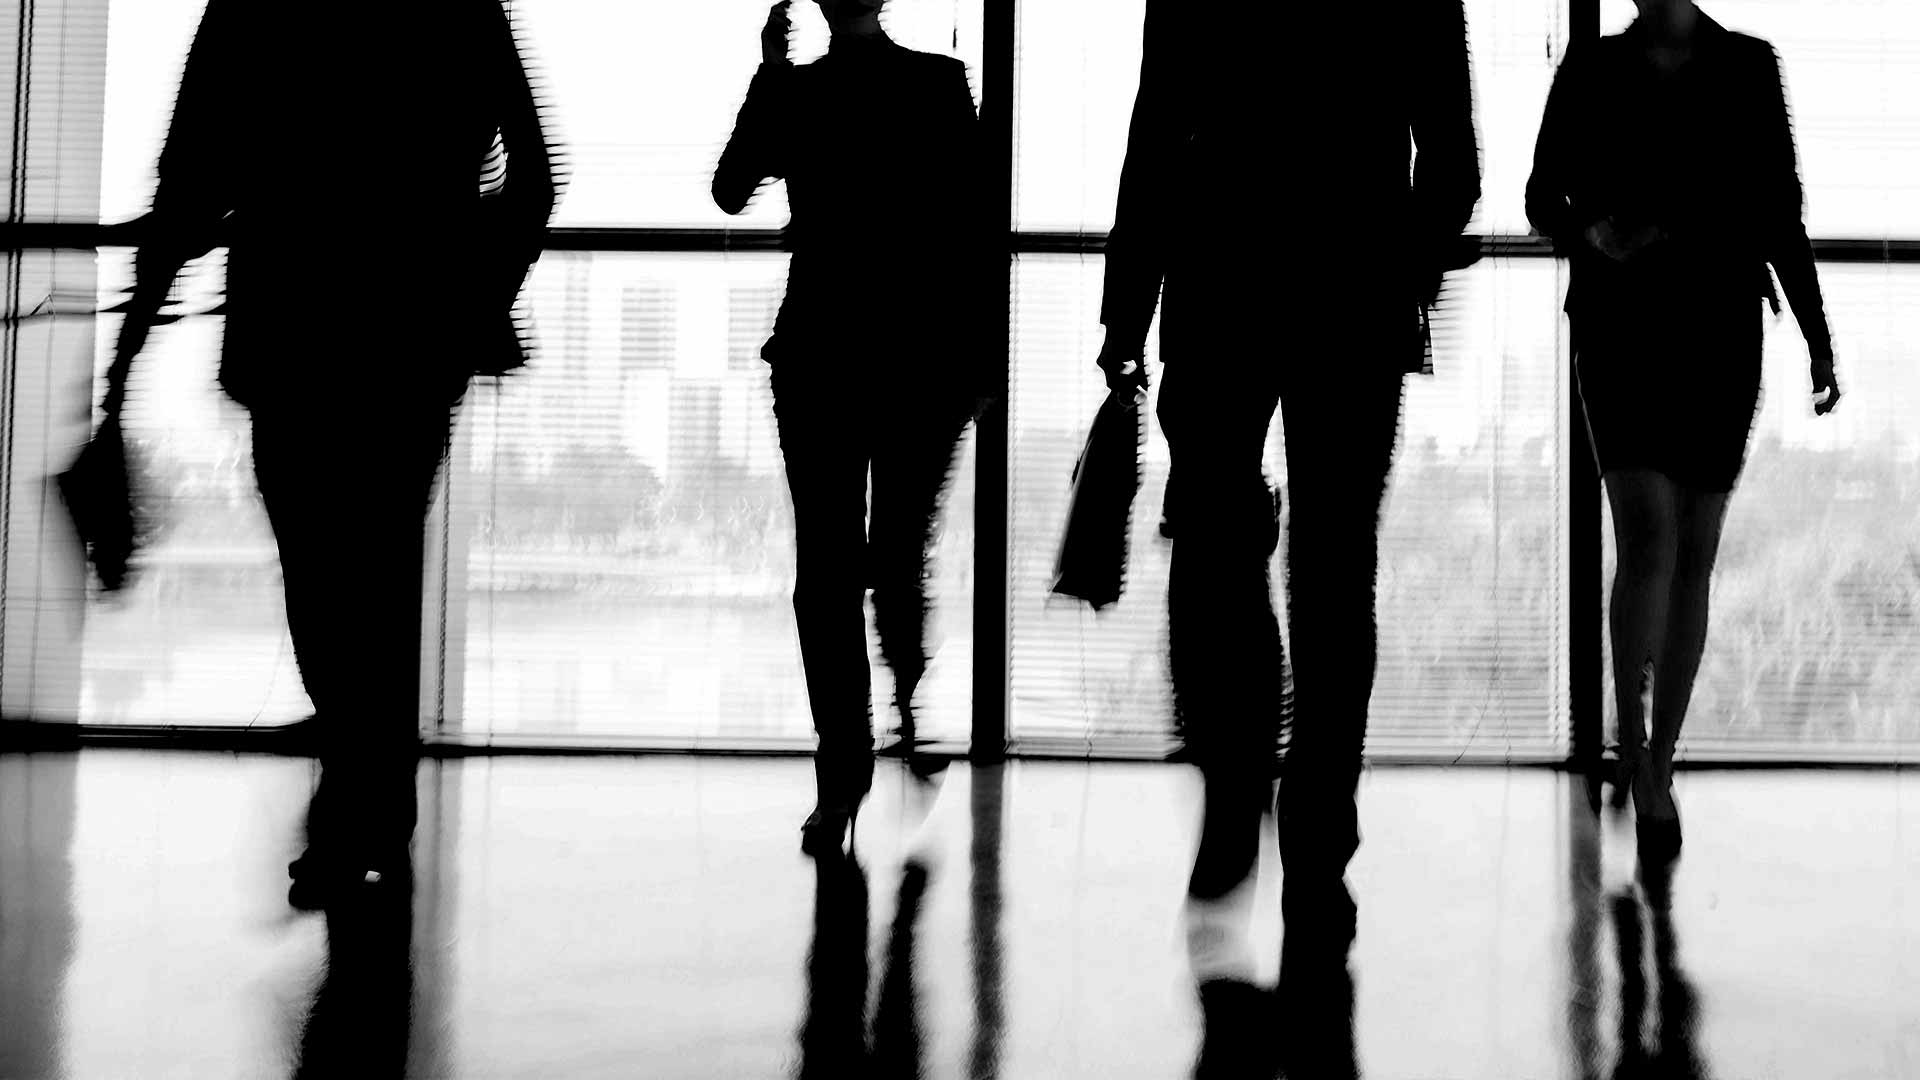 Silhouette of office workers